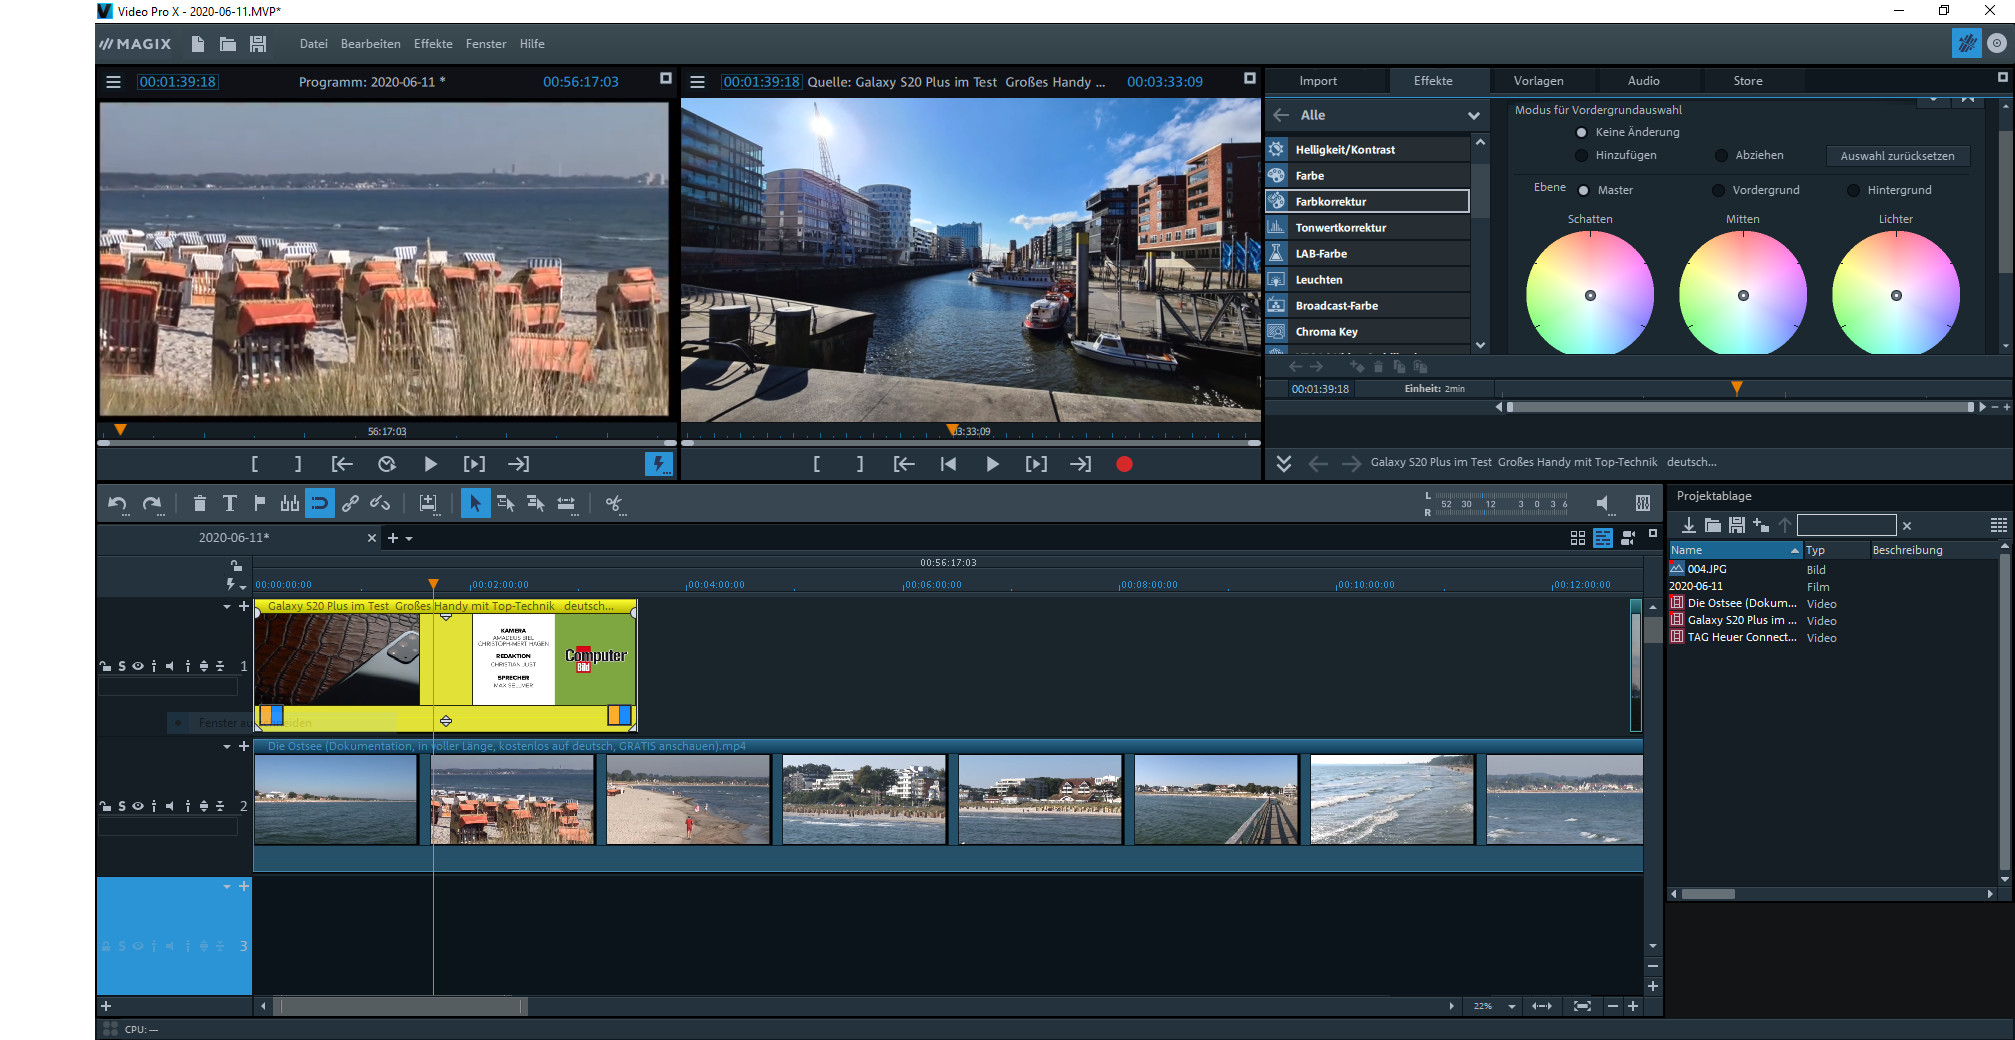 Screenshot 1 - Magix Video Pro X